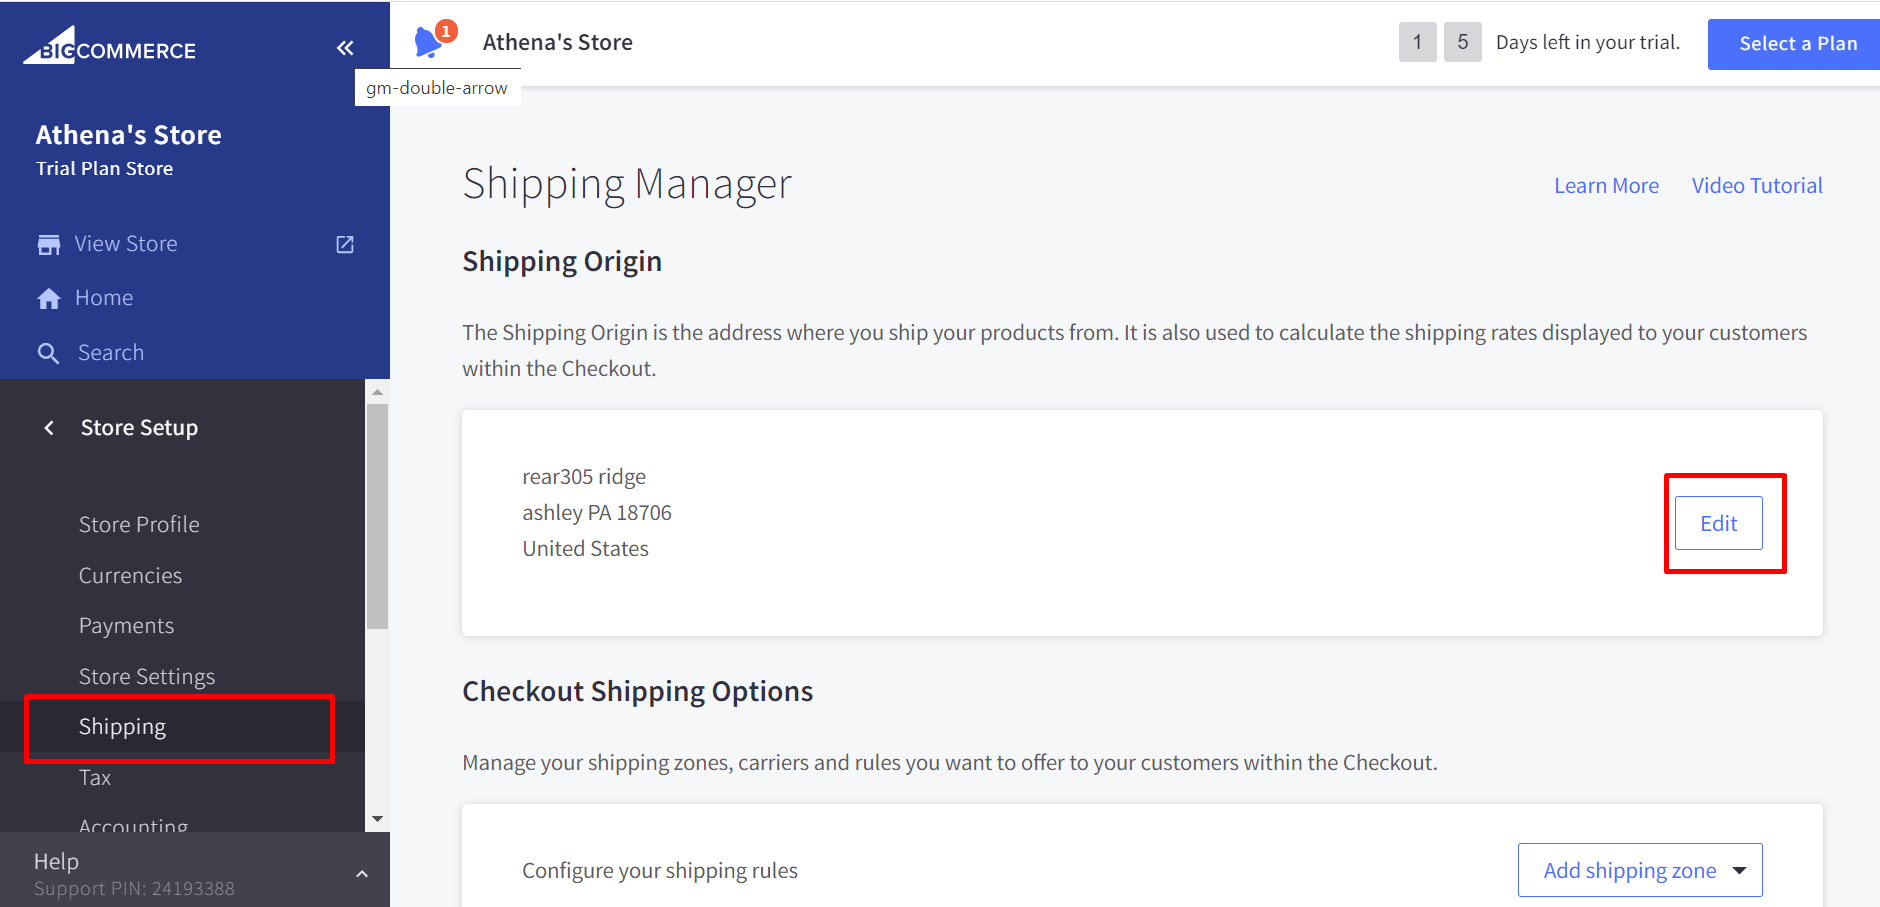 Go to Store Setup > Shipping